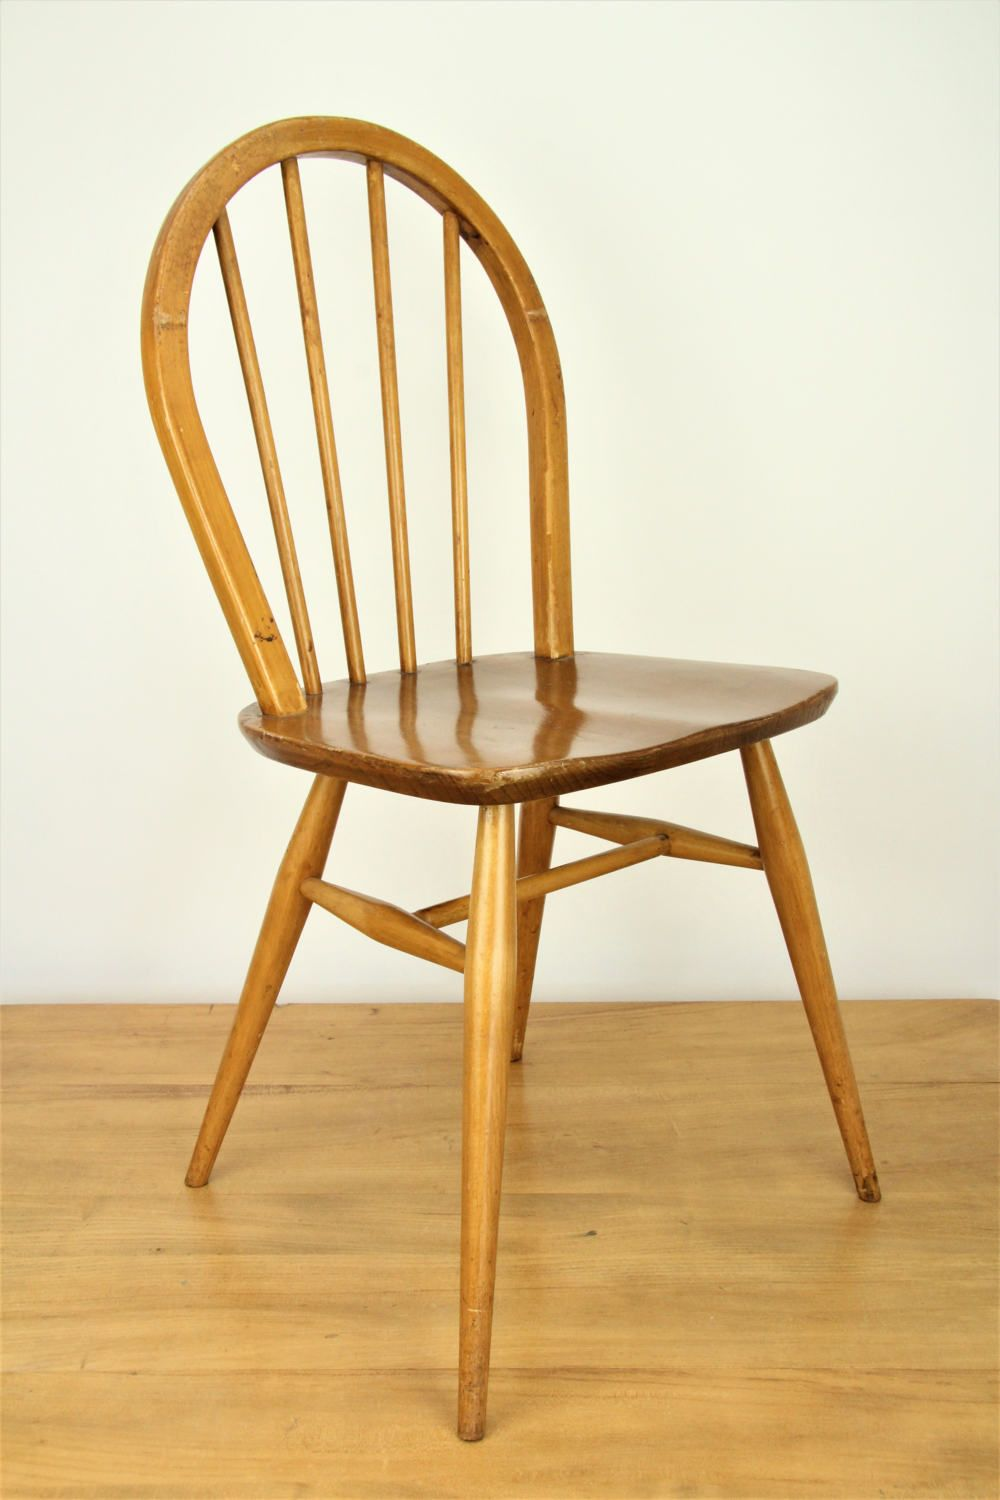 4 original vintage ercol windsor chairs by no6warehouse on etsy rh pinterest co uk